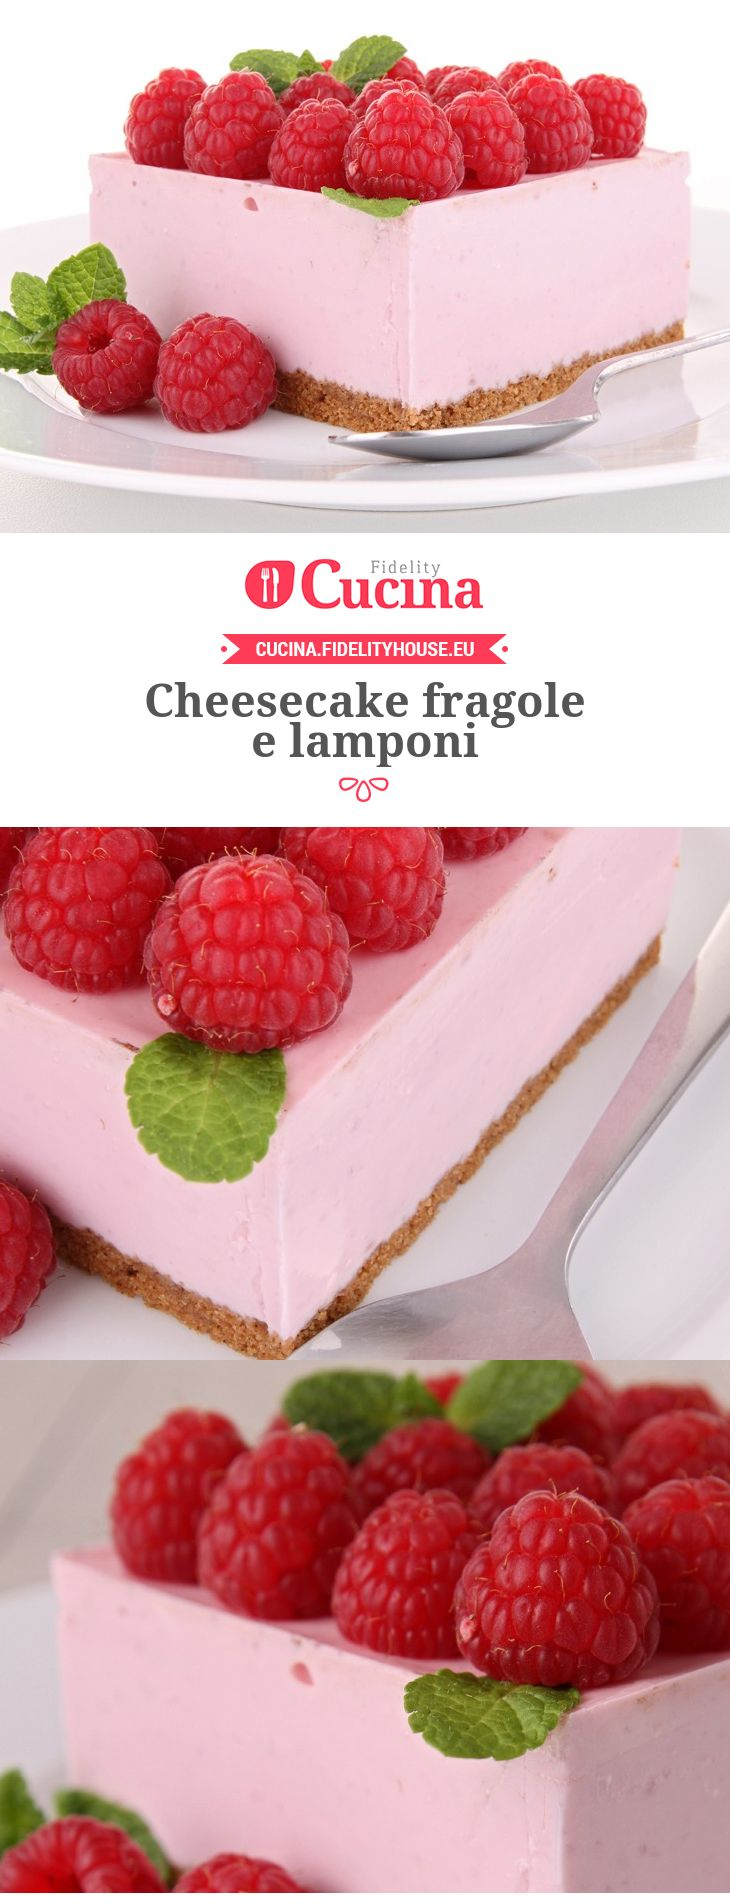 Cheesecake fragole e lamponi